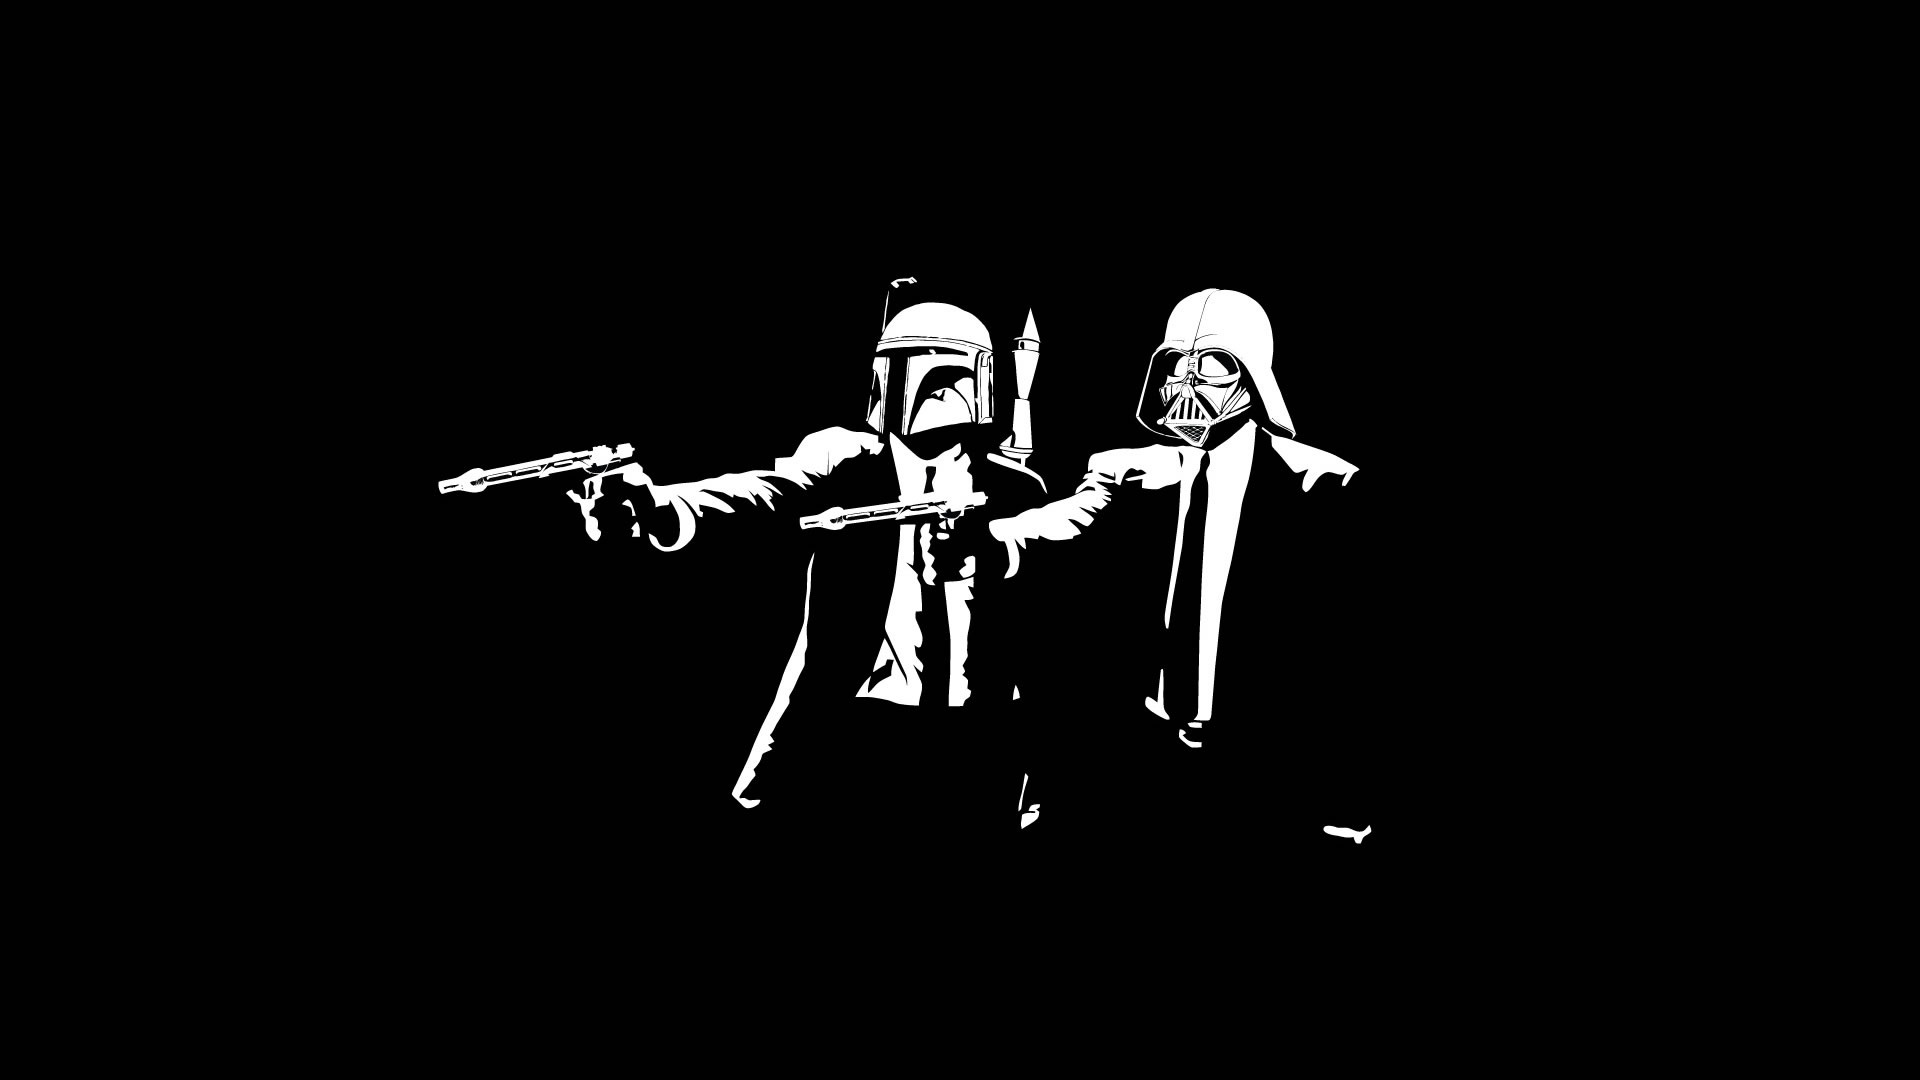 Free Download Star Wars Pulp Fiction Boba Fett Darth Vader Wallpaper Bw Black White 1920x1080 For Your Desktop Mobile Tablet Explore 44 Star Wars Pulp Fiction Wallpaper Funny Star